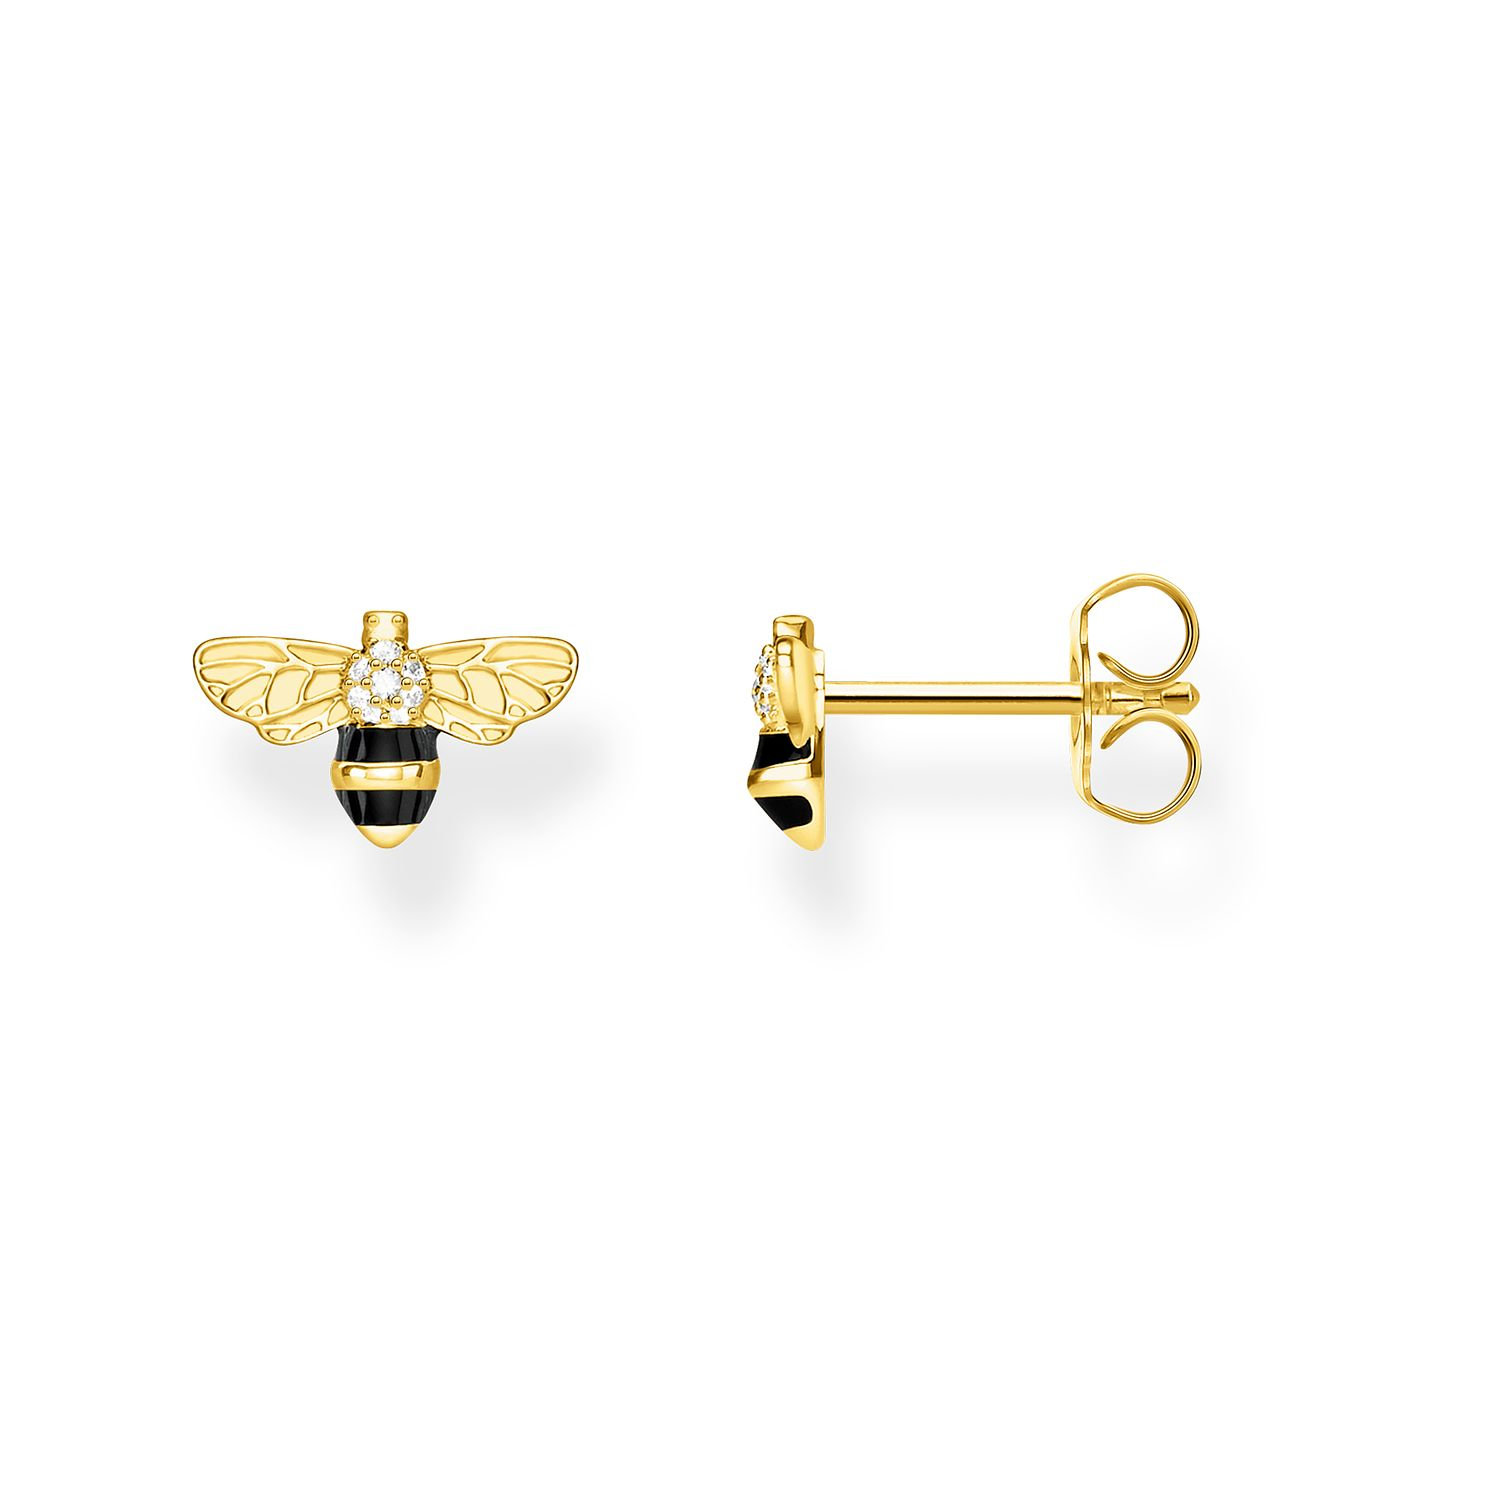 Thomas Sabo Bee Yellow Gold Plated Cubic Zirconia Earrings - Product number 4353153